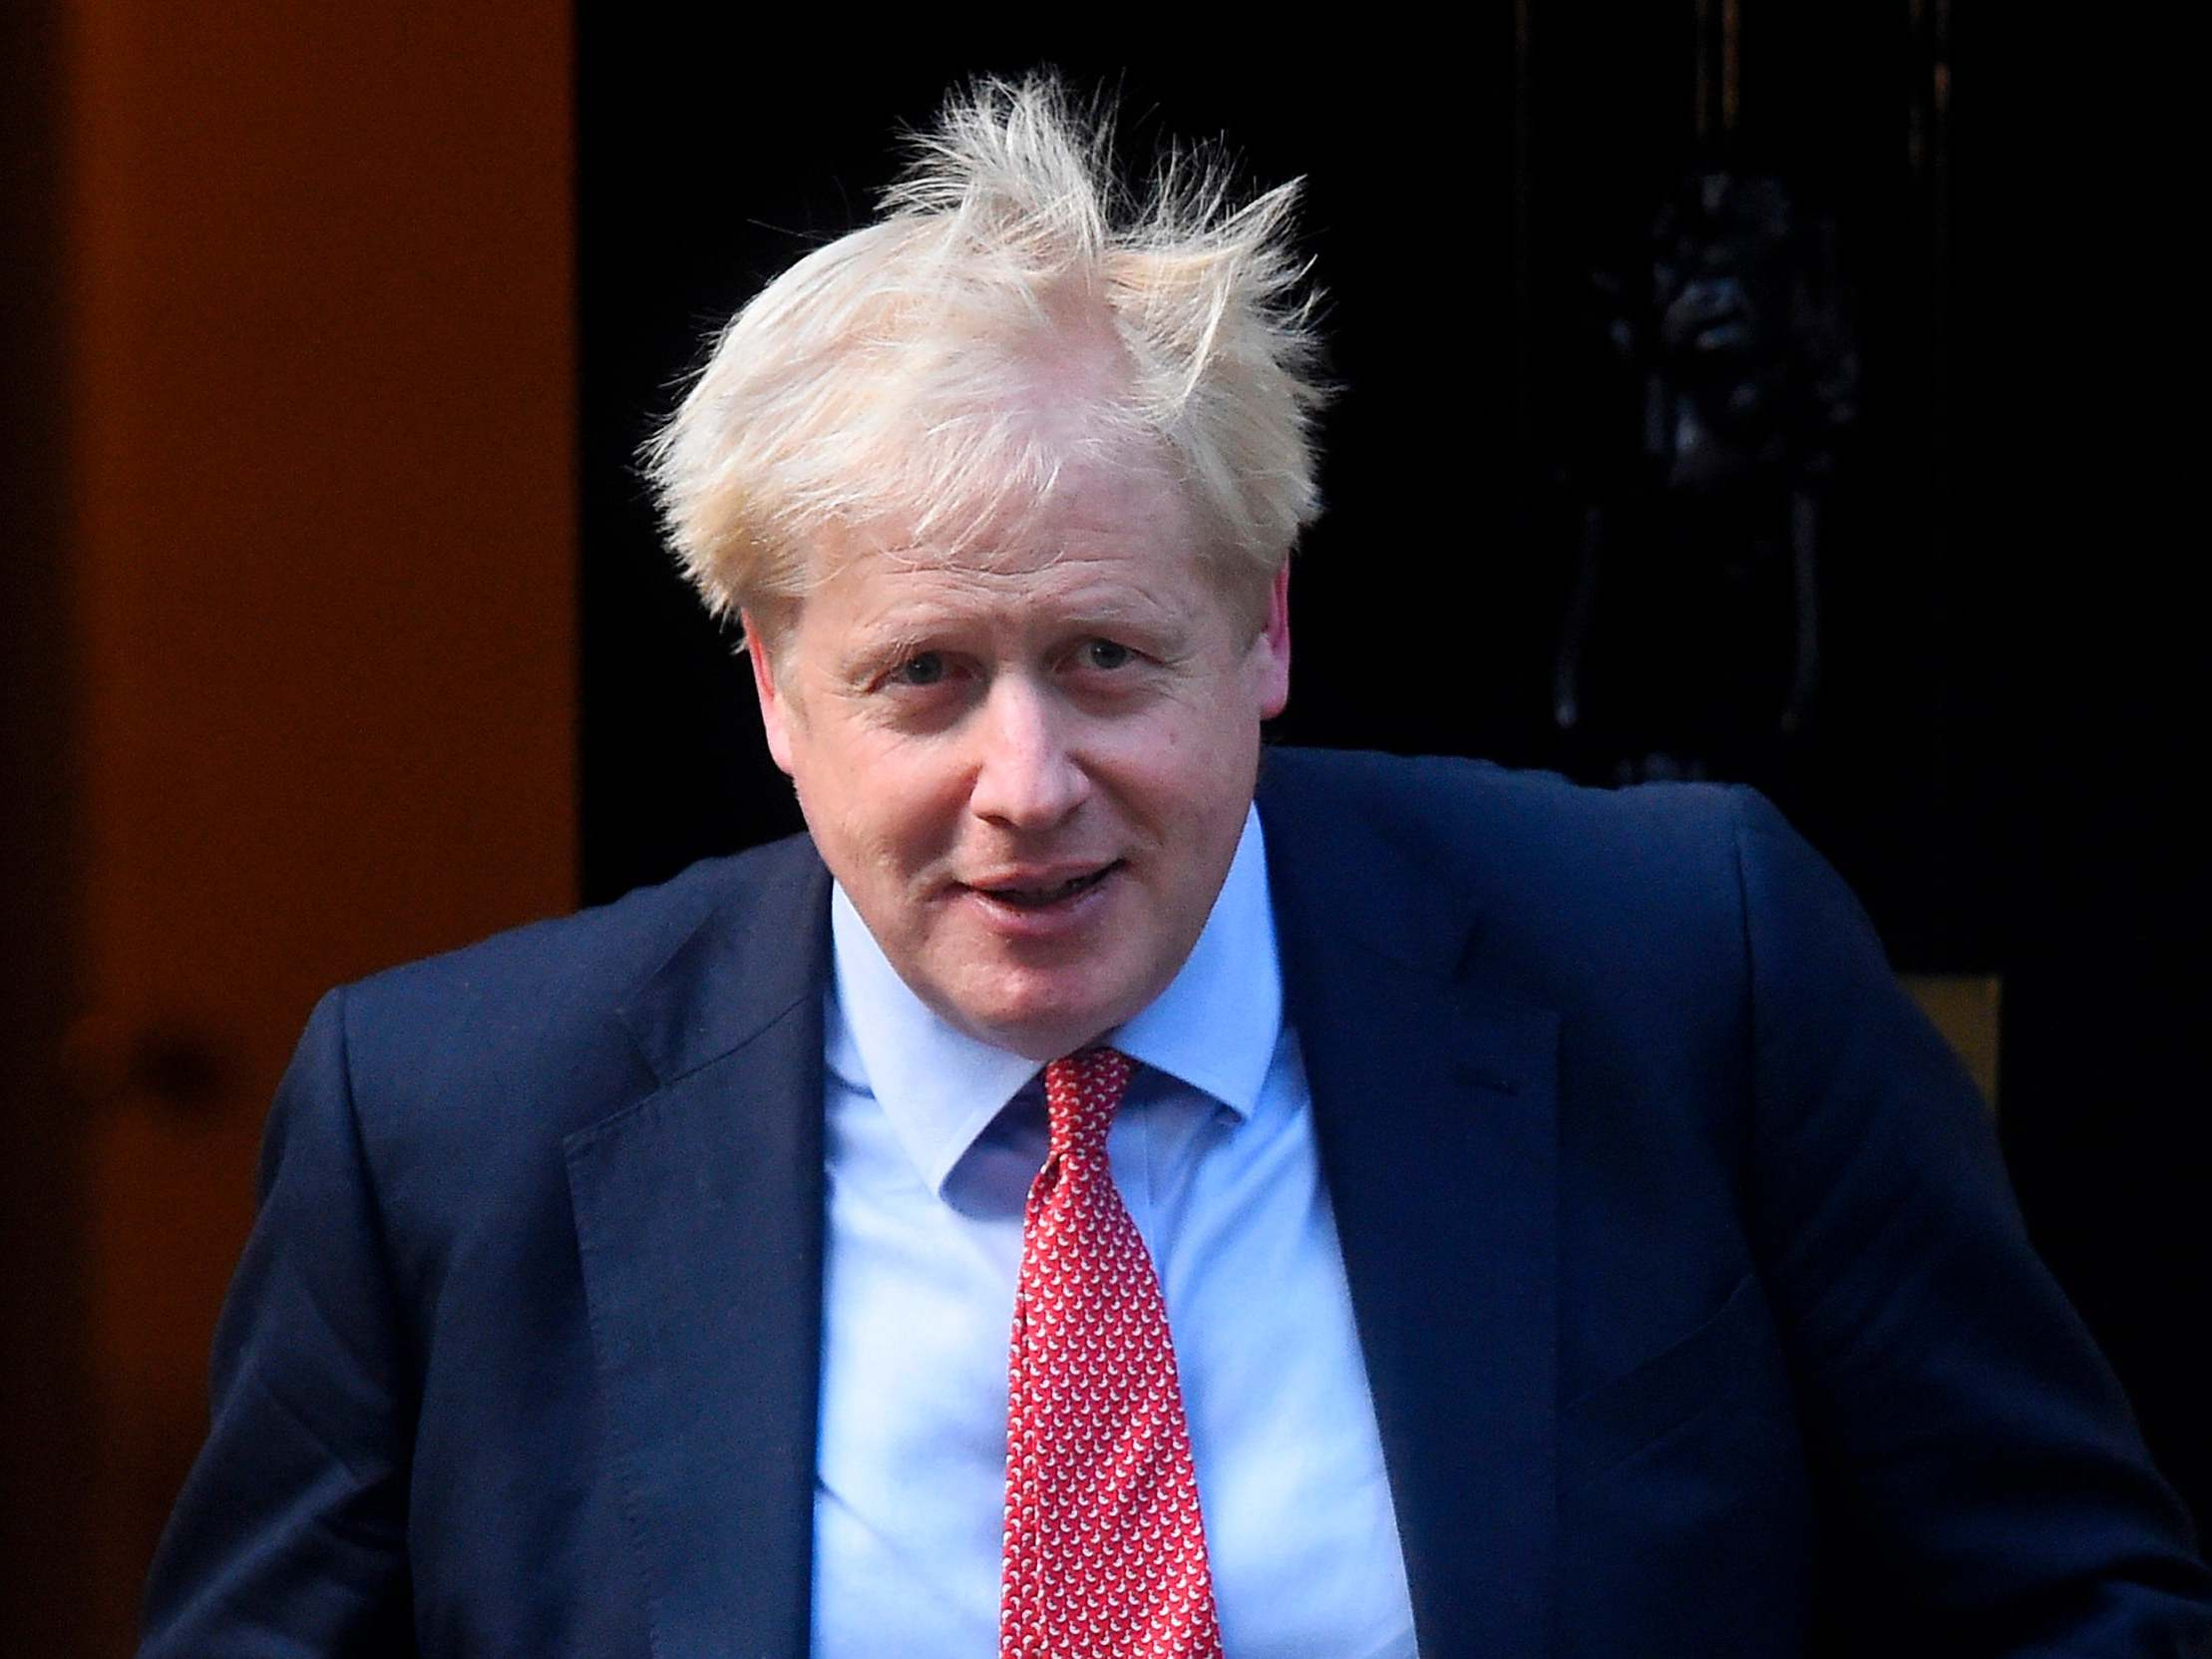 Boris Johnson news – live: DUP dismisses Brexit breakthrough 'nonsense' as government braces for humiliating extension request letter